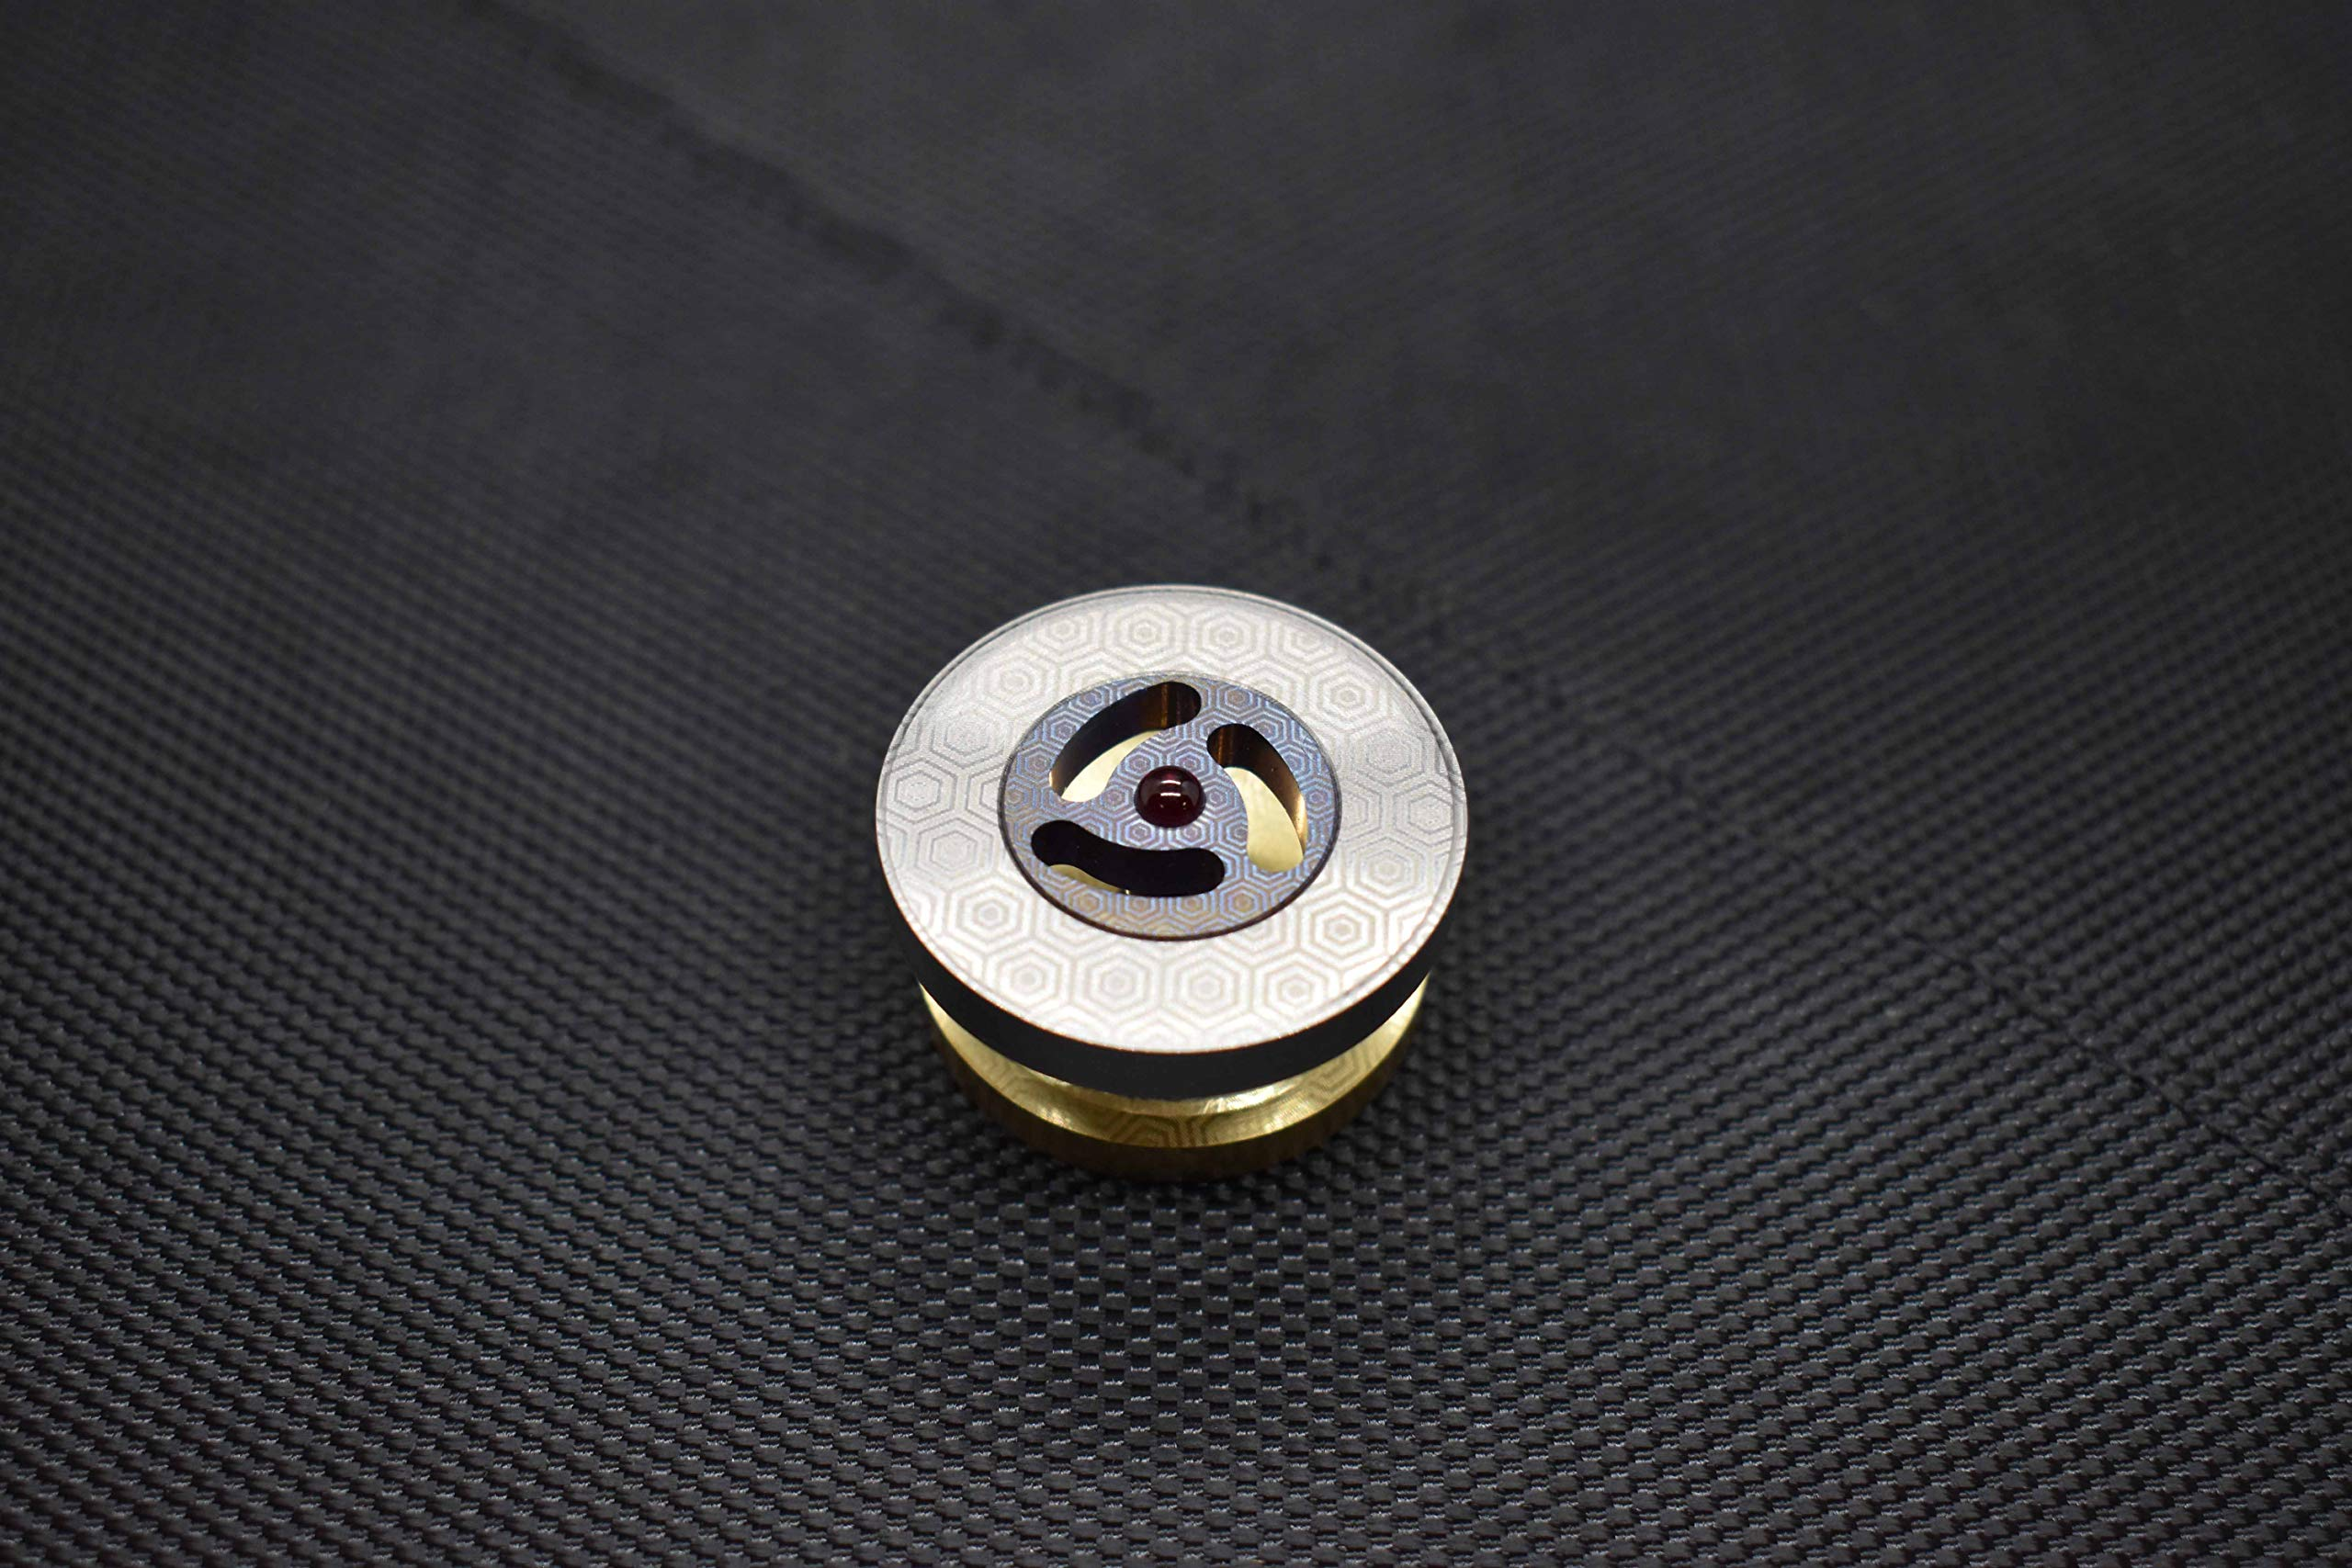 MetonBoss Spinning Tops - Tungsten Rotor / Precision Milled Titanium Core with Ruby Bearing | Everyday Carry Birthday Gift Ideas | Collectable Fidget (Performer MEGA) by MetonBoss (Image #2)